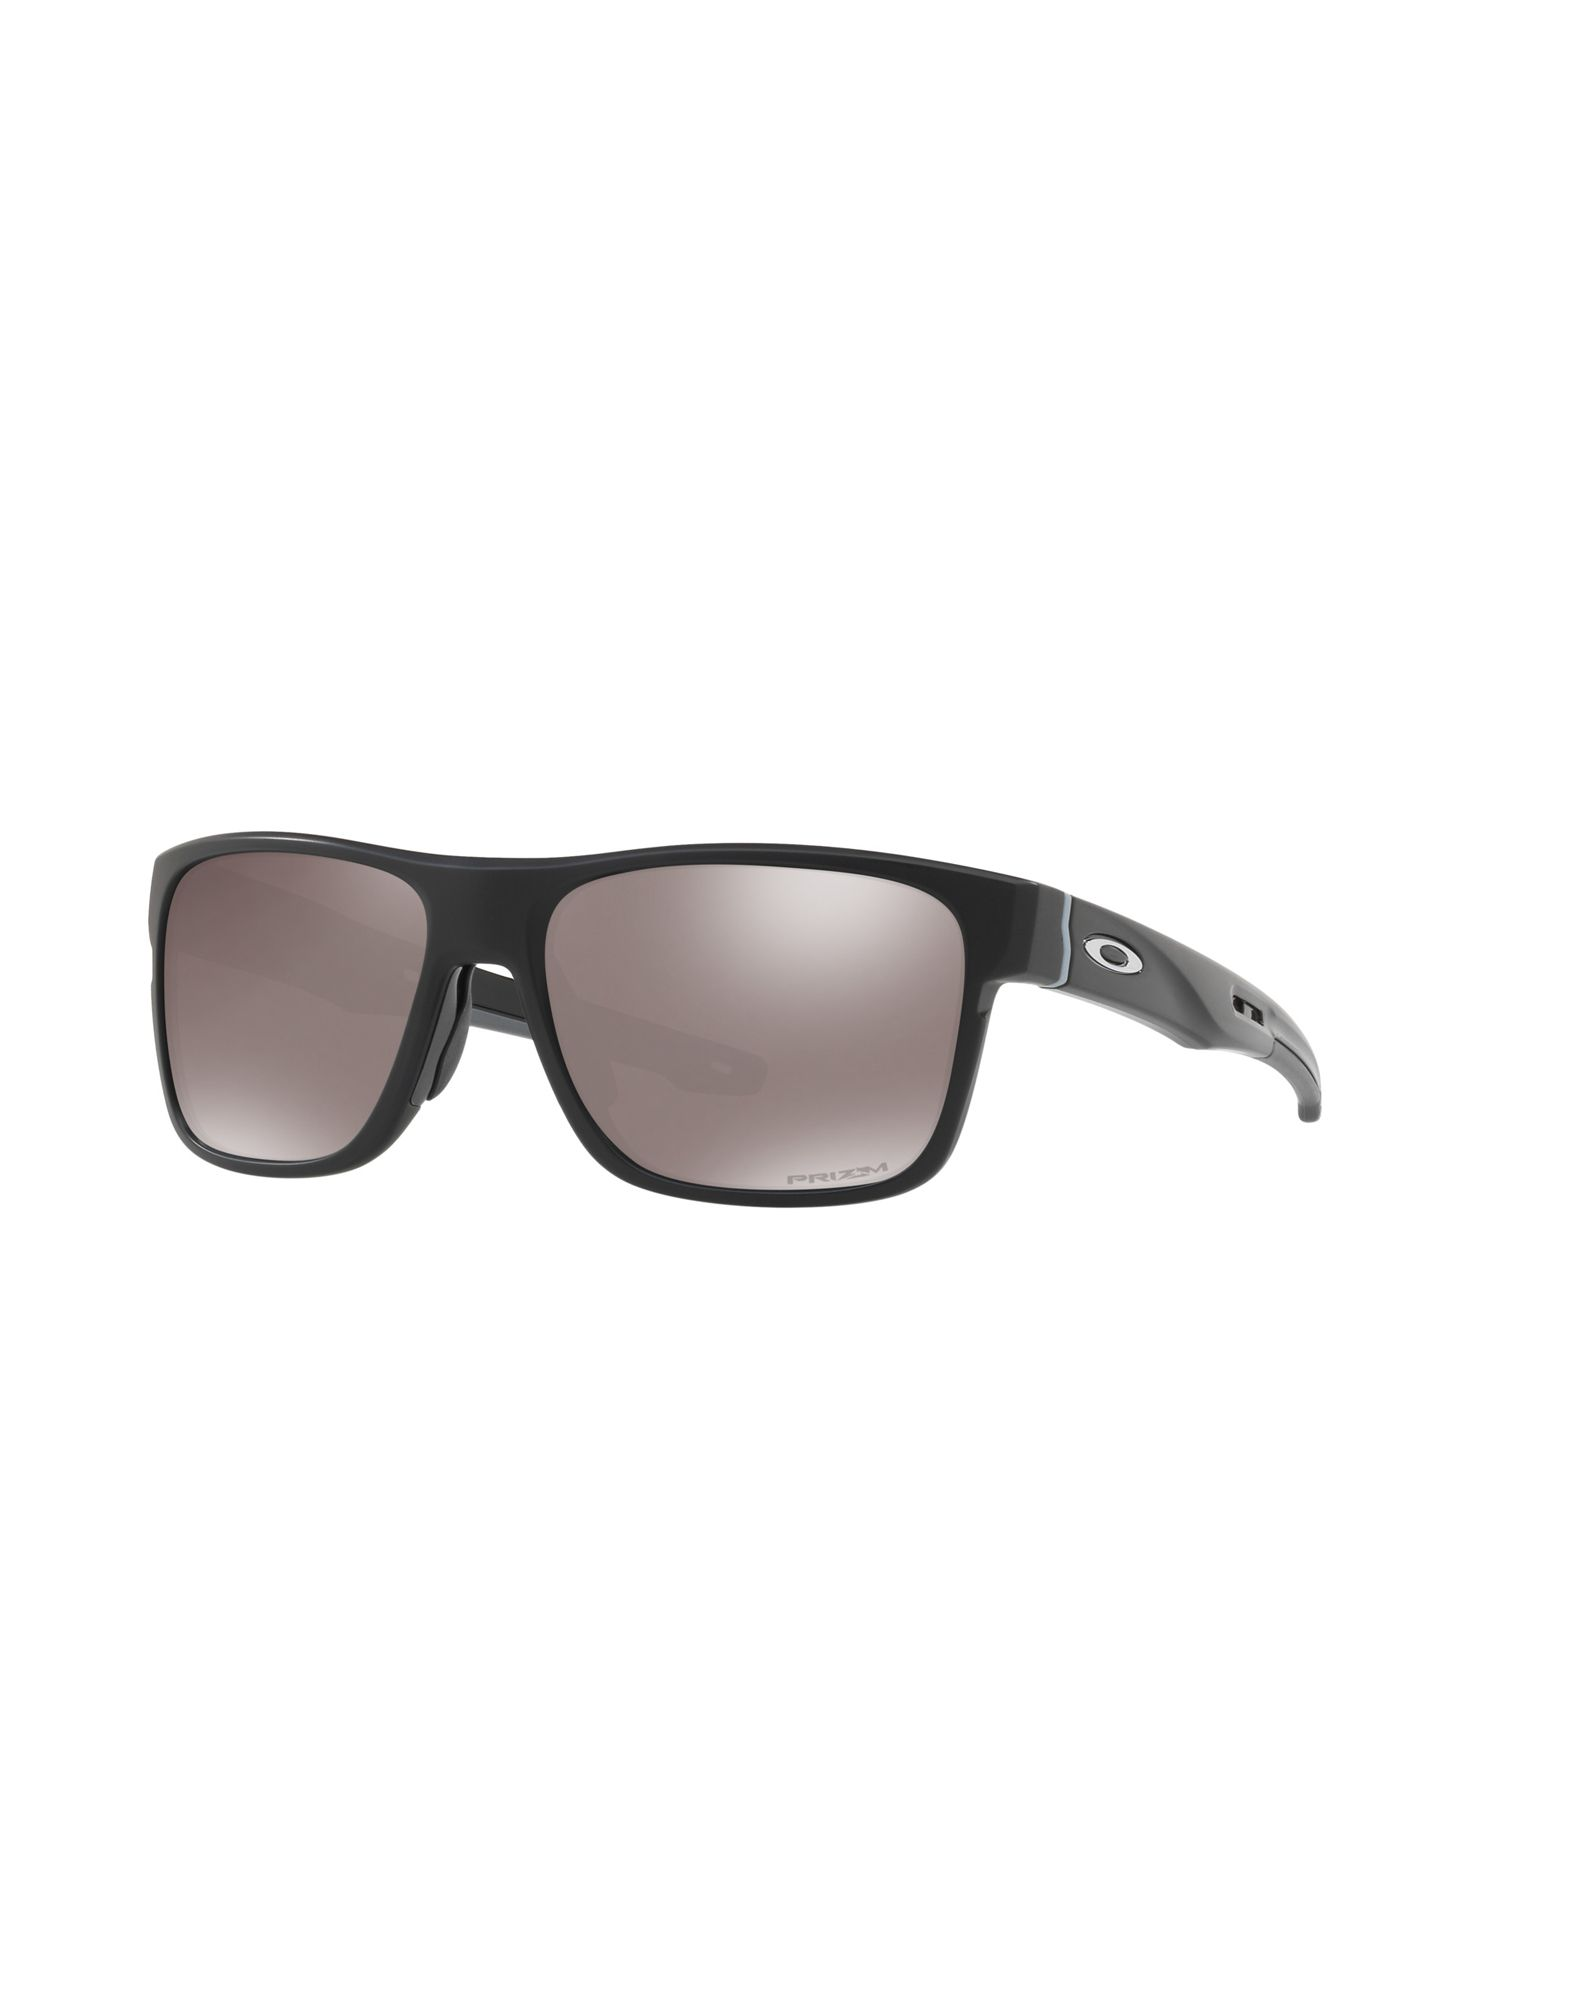 OAKLEY Солнечные очки очки oakley rpm edge rasp spritzer oo grey polar